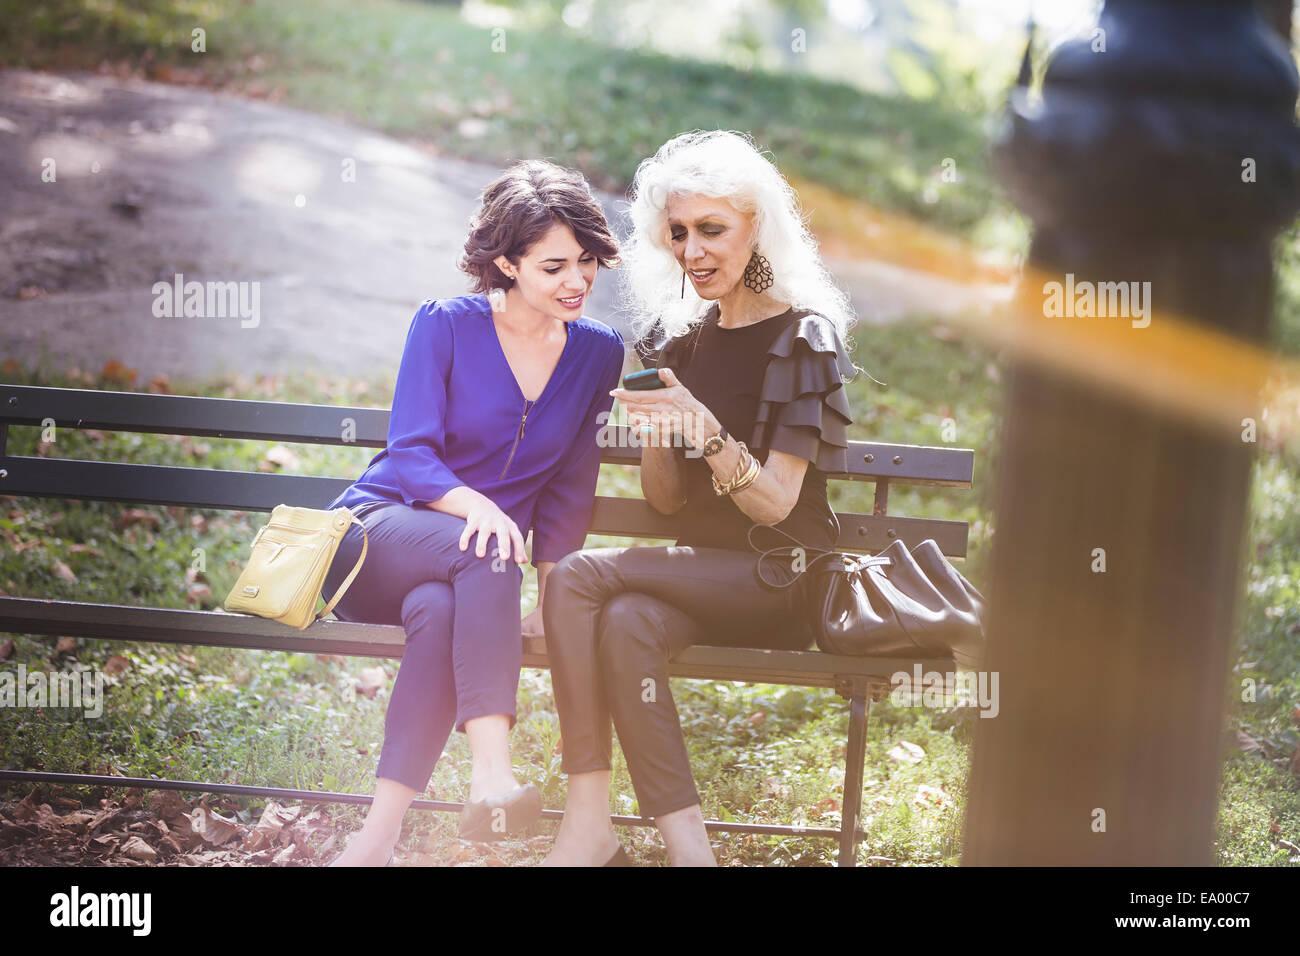 Young woman in city park with mentor looking at photos in smartphone - Stock Image